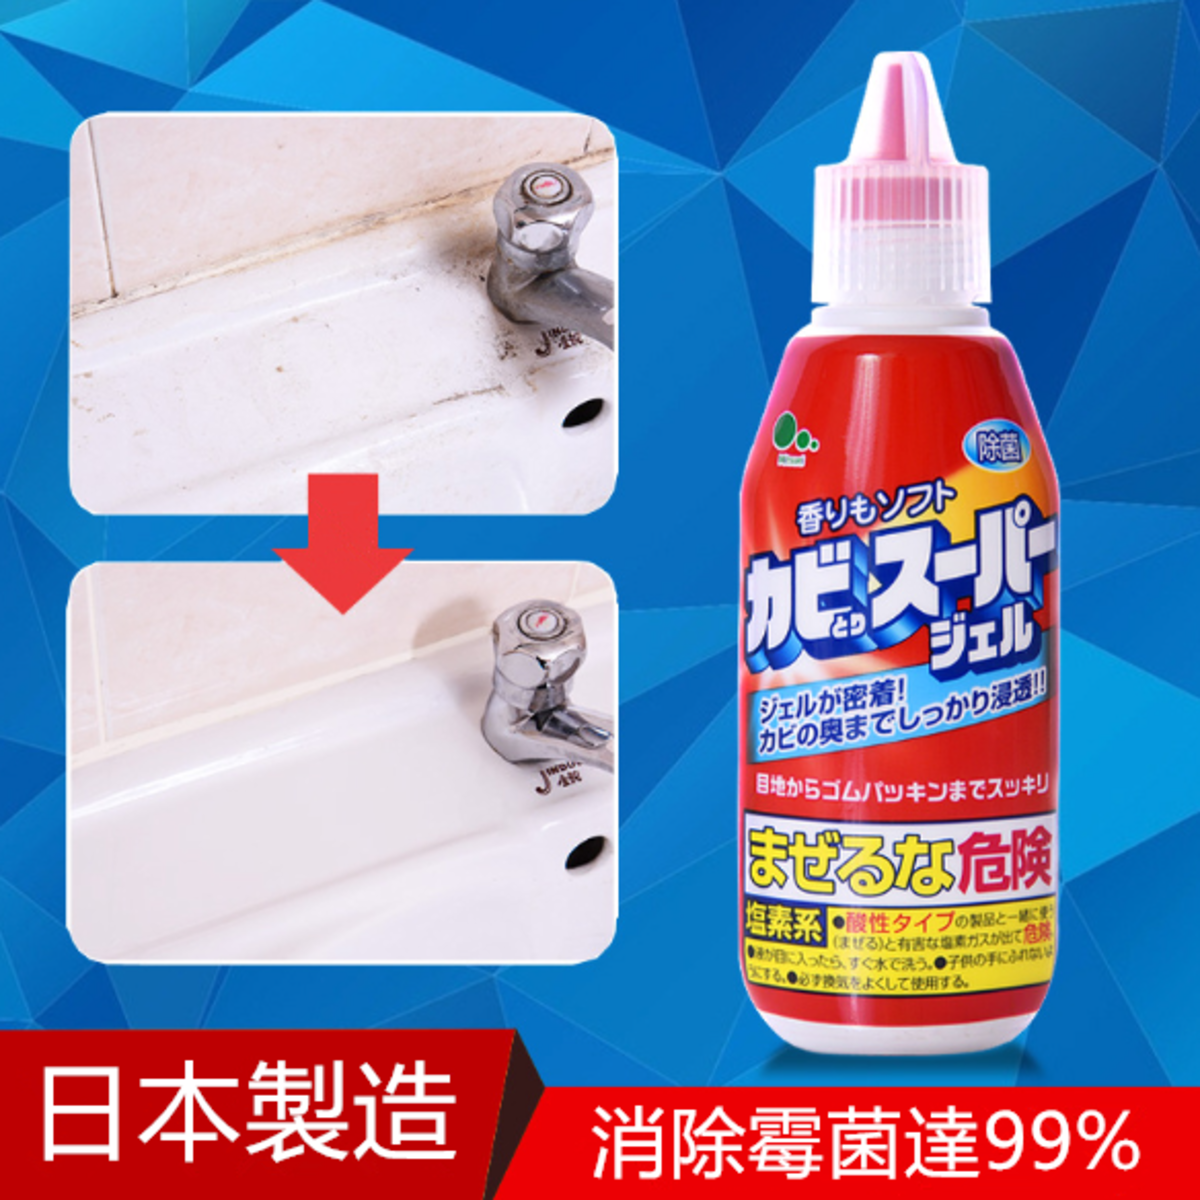 [Made in Japan] Mold Remover, can remove mold up to 99%